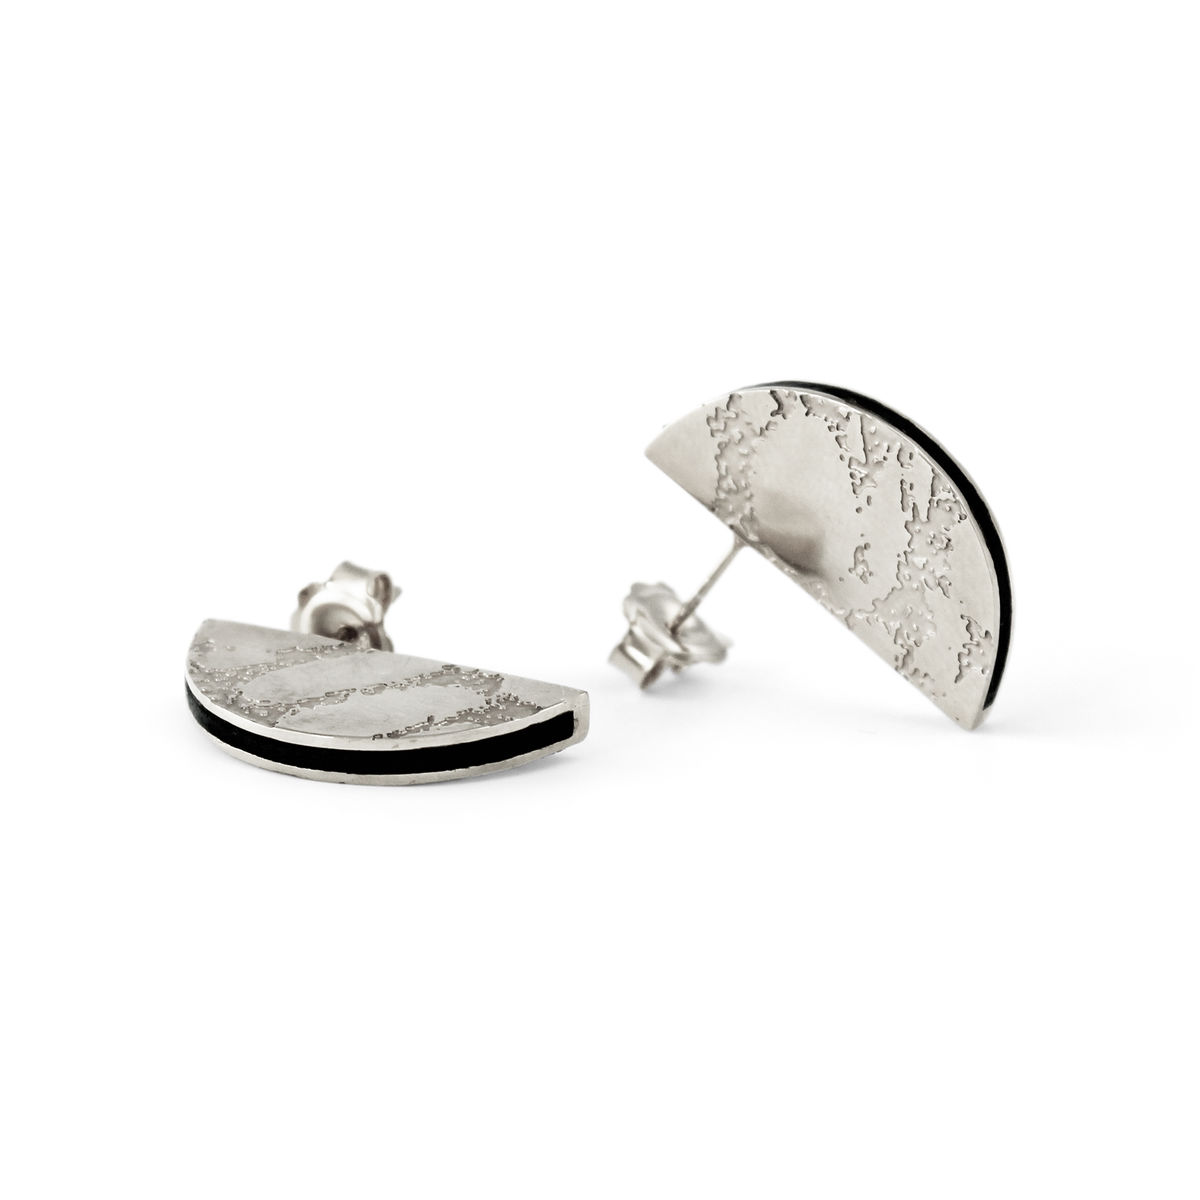 SKIN textured semicircle stud earrings - silver & black - product images  of